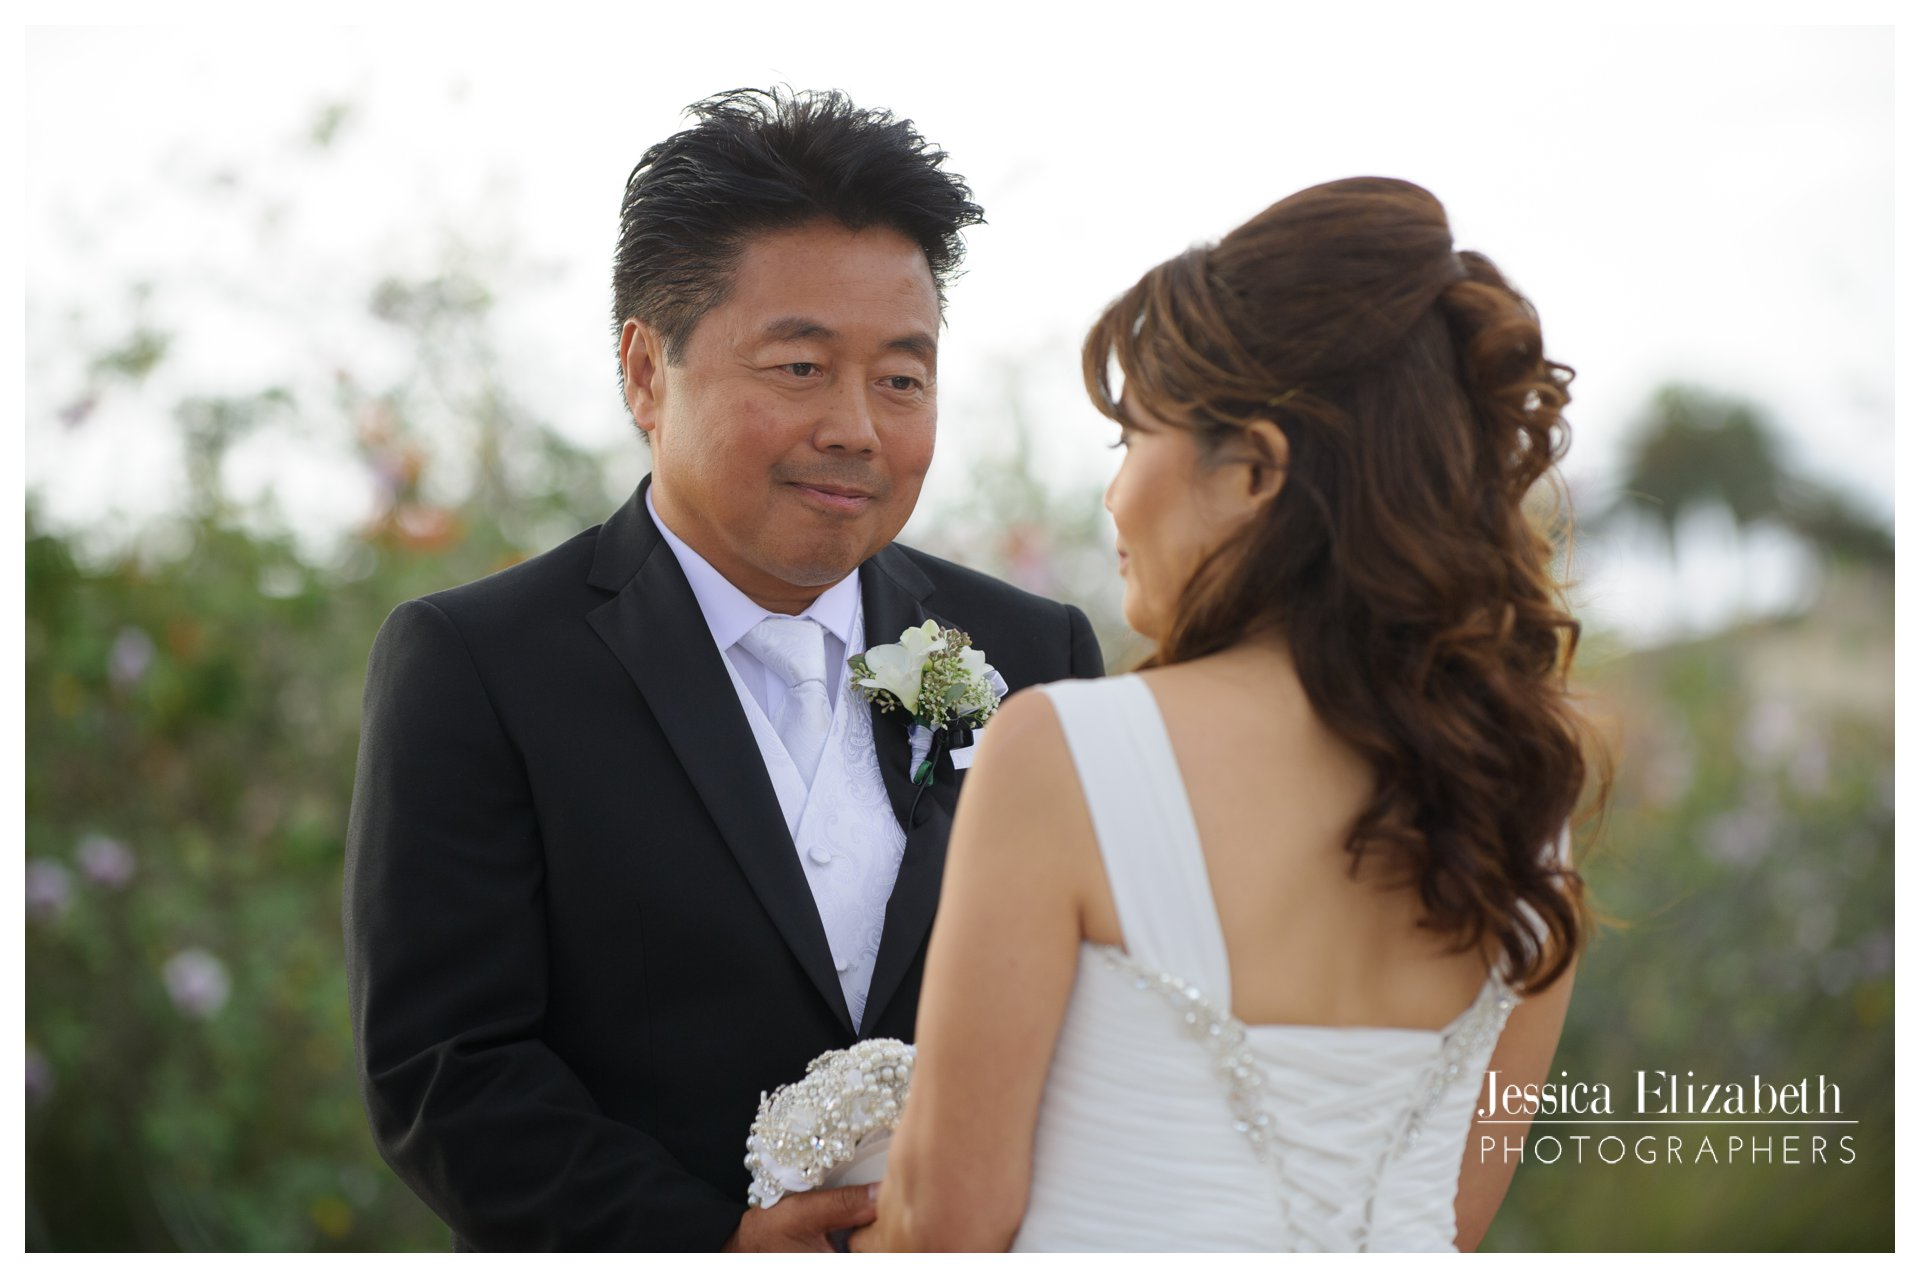 13-Terranea-Palos-Verdes-Wedding-Photography-by-Jessica-Elizabeth-w.jpg